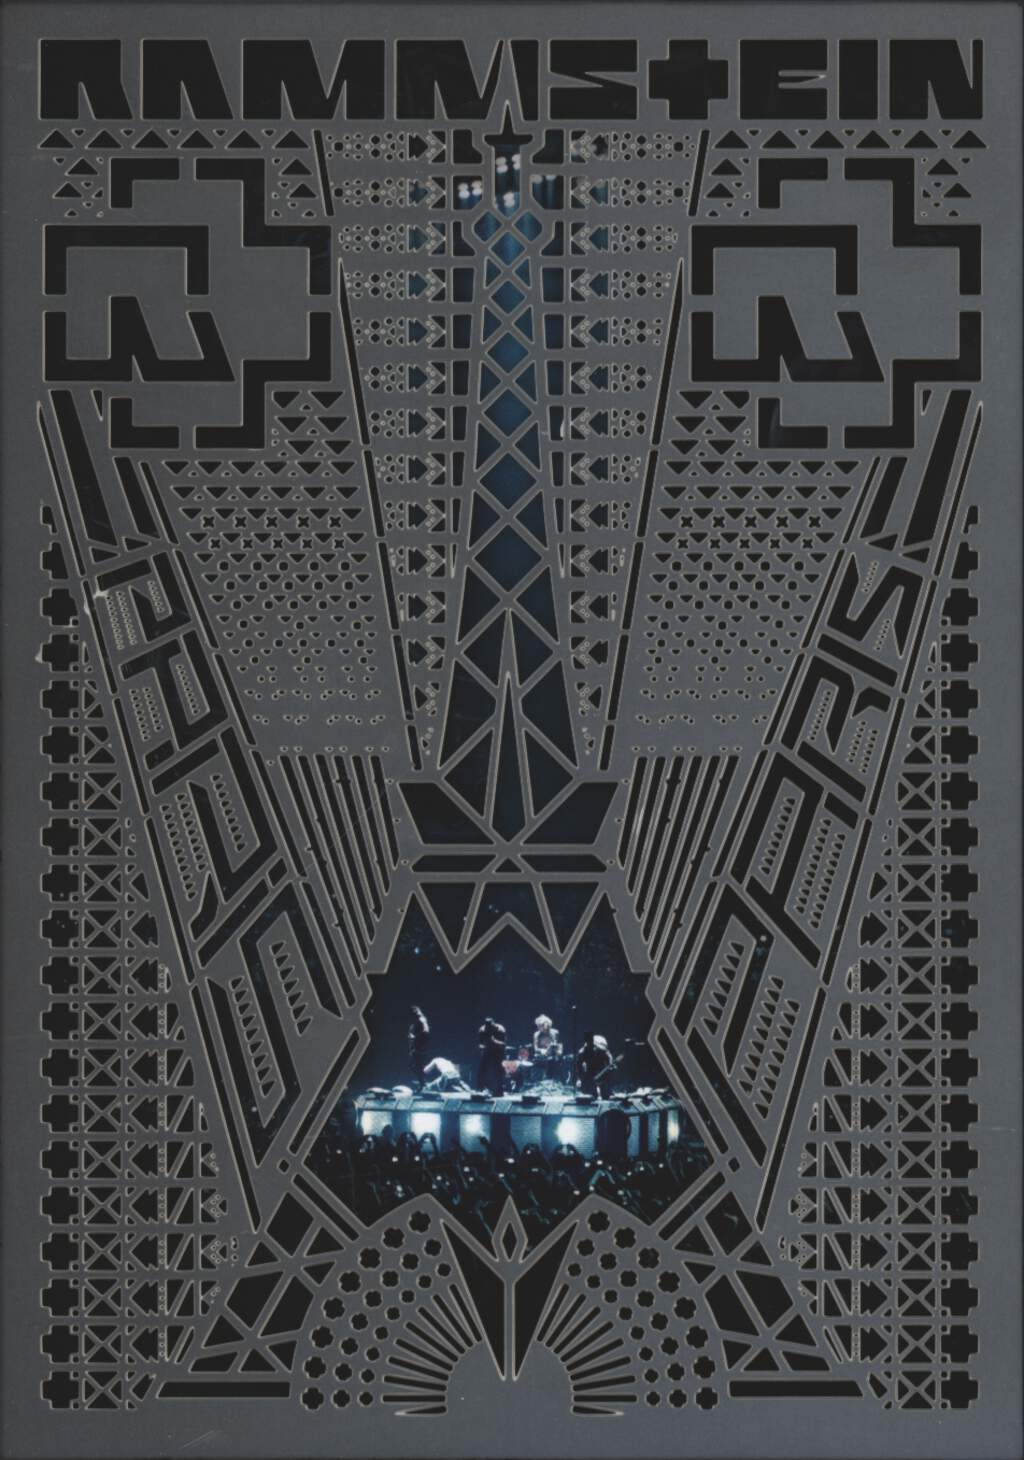 Rammstein: Paris, Blu-ray Disc